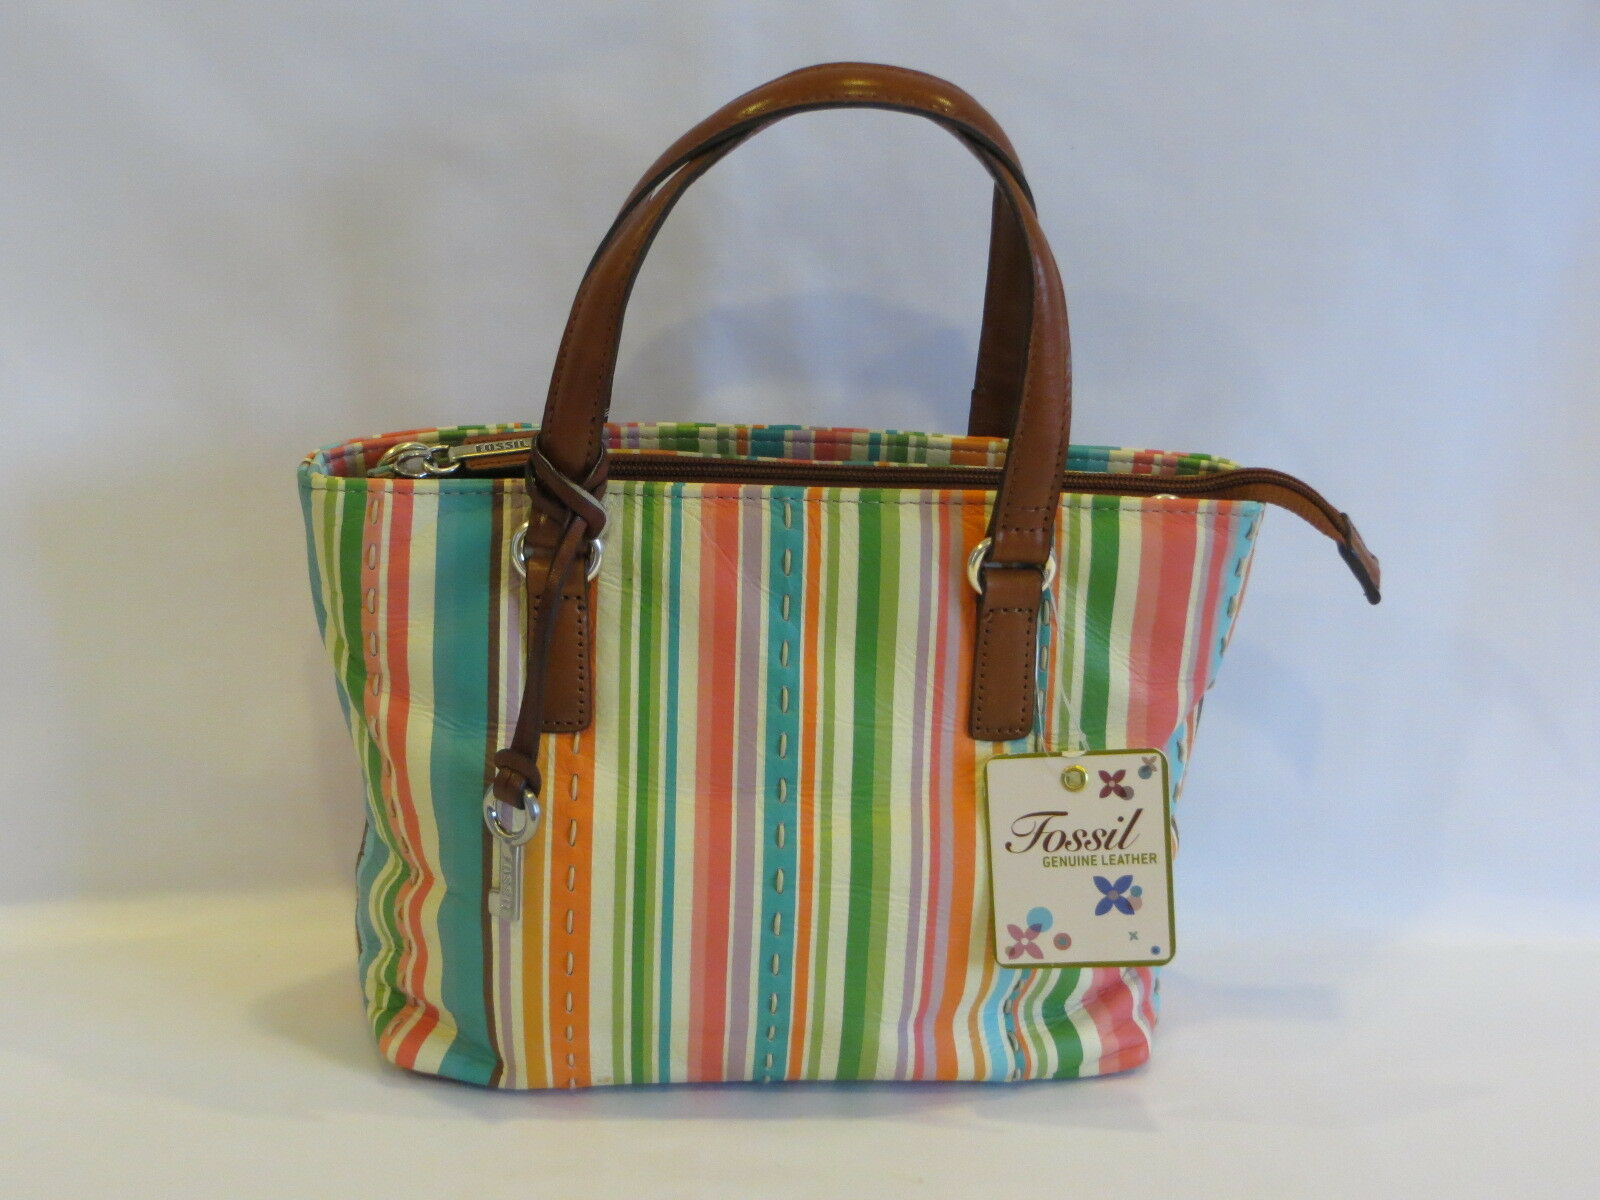 Fossil Vintage Bright Multi Color Striped Leather Double Handles Keely Tote Canvas Norton Secured Powered By Verisign